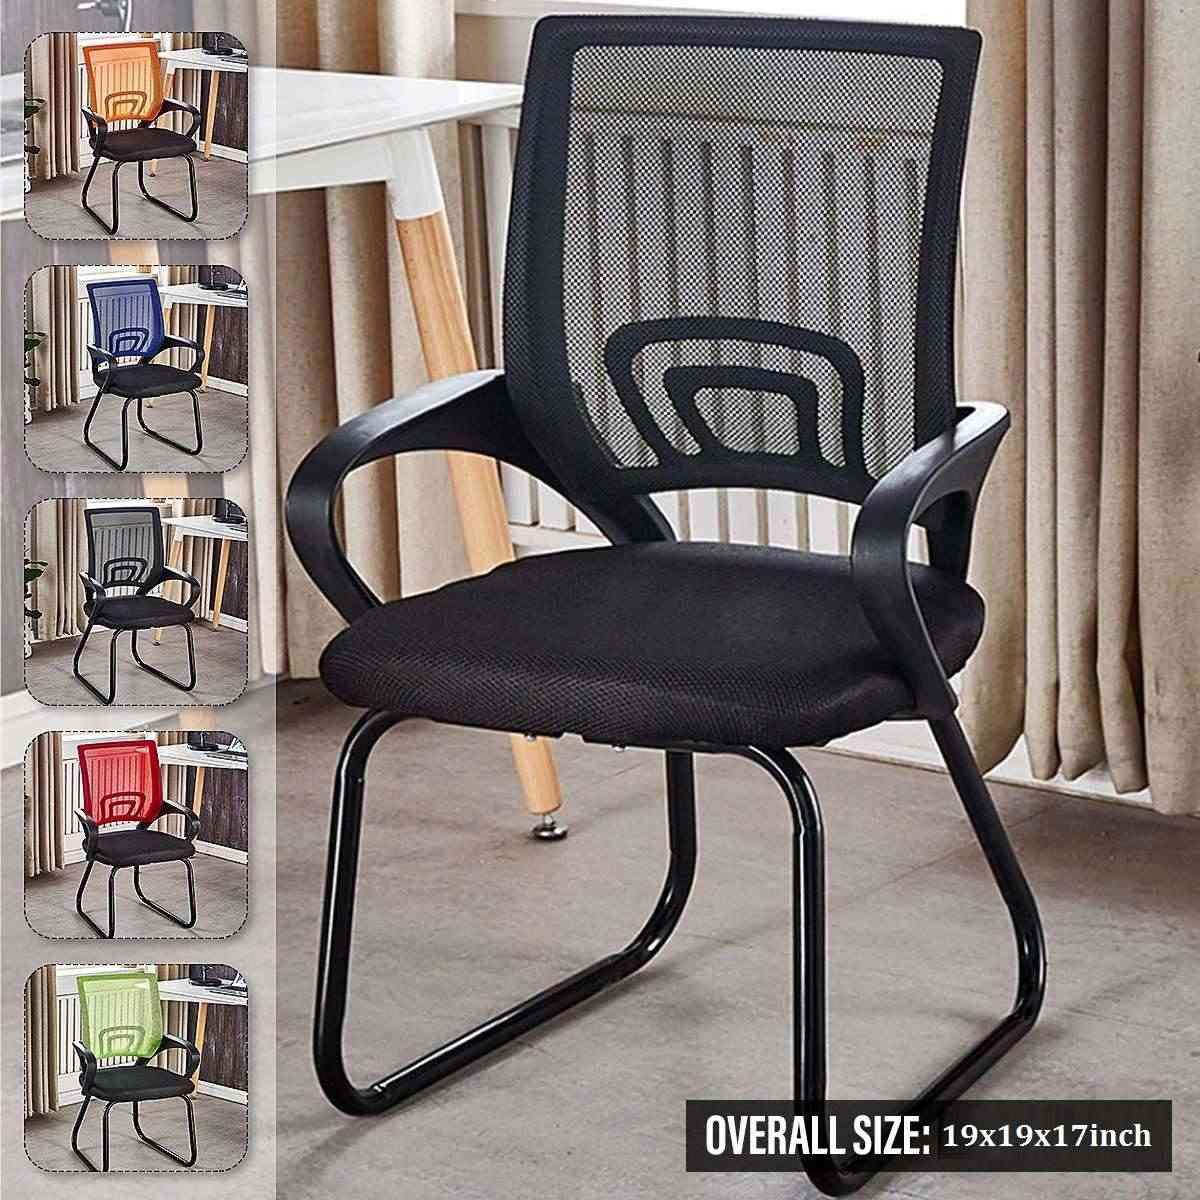 Möbel Für Studenten Ergonomische Hause Bürostuhl Mesh Mid Zurück Computer Schreibtisch Sitz Metall Basis Studenten Stuhl Gaming Stuhl Büro Möbel Keine Rad|school Chairs| - Aliexpress